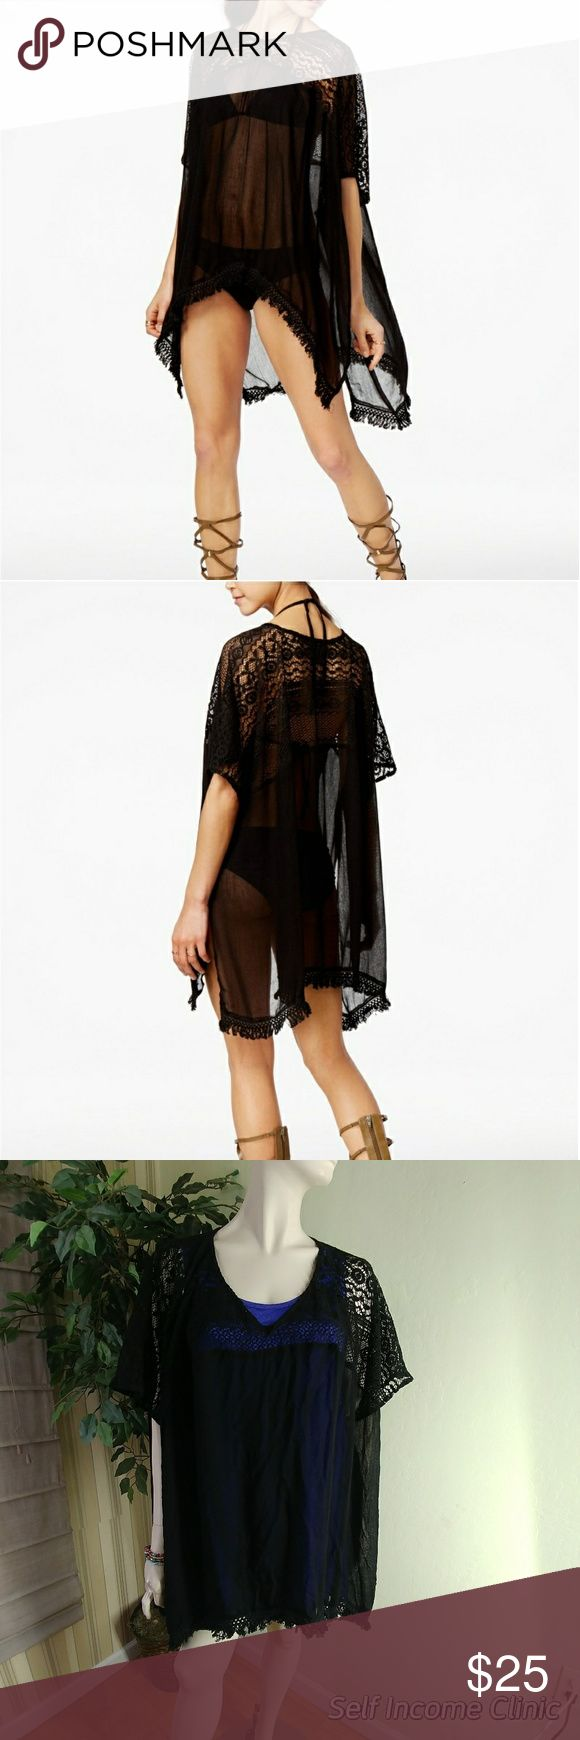 "Steve Madden Crochet Cover-Up Peak-a-Boo Poncho Steve Madden Crochet Cover-Up, one size fits most, color black, poncho style, trimmed in breezy fringe, crochet details at shoulder and hem, 2"" tassels, measure's 38"" x 28.5"" made of viscose, cotton and nylon, compare $39.00 retail value comes new with tag as closeout merchandise in good condition. Steve Madden Swim Coverups"